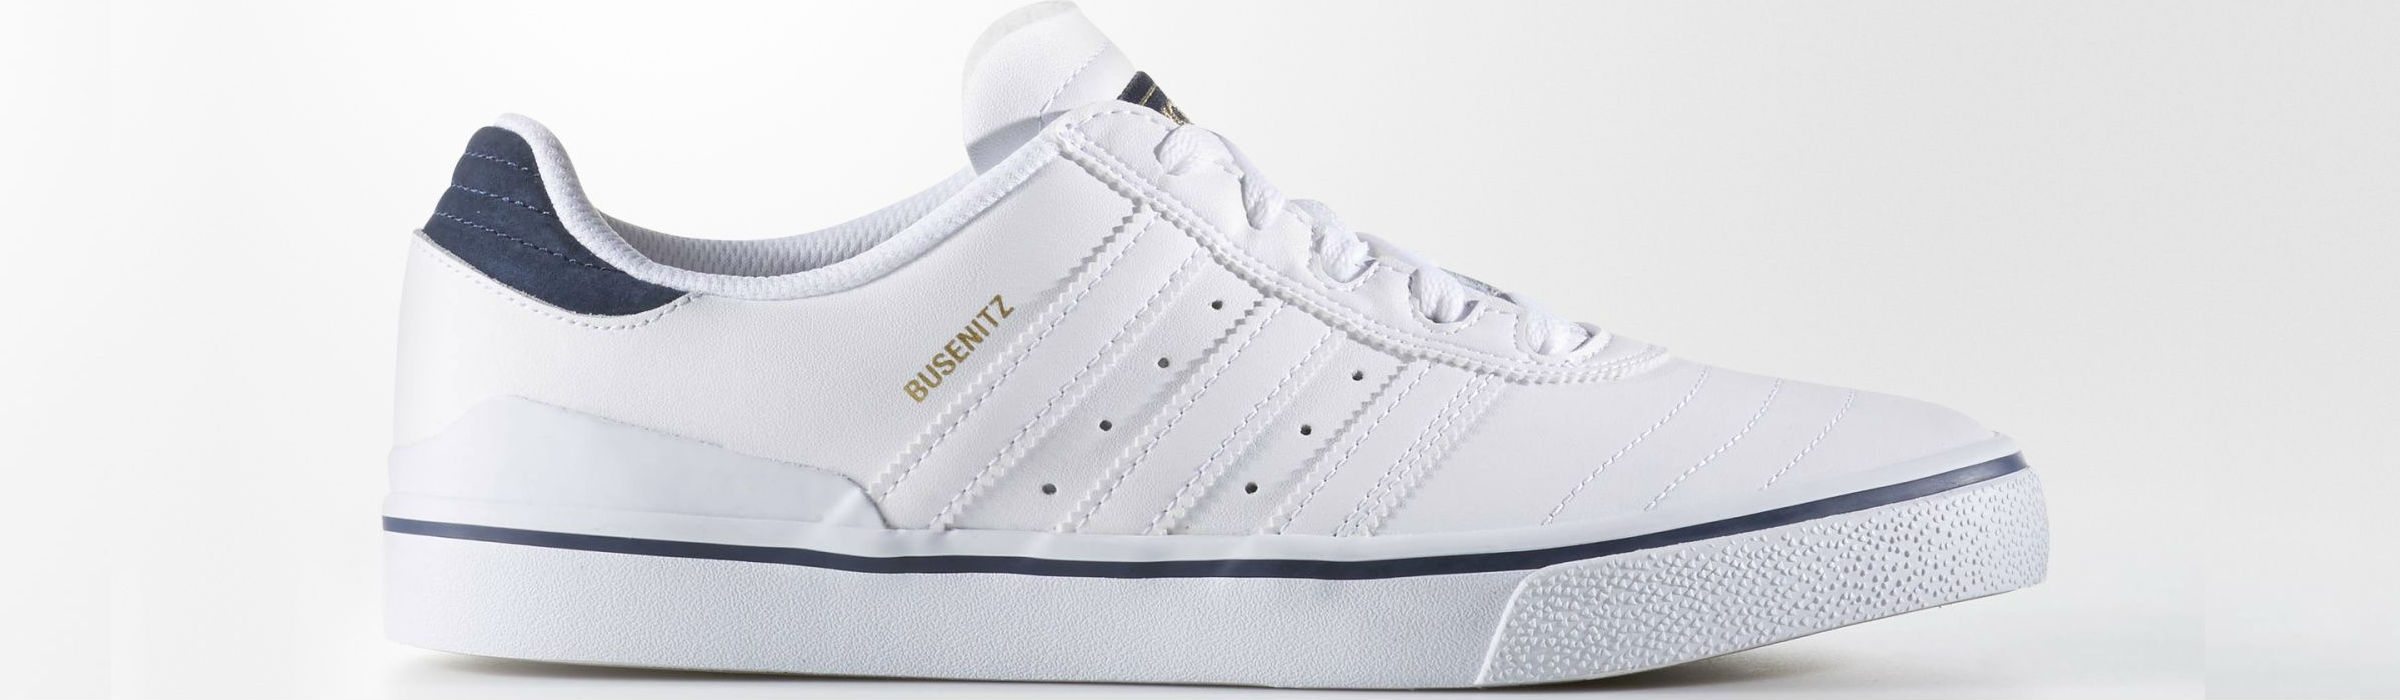 Adidas Busenitz Vulc Adv Shoes Footwear White Collegiate Navy Full